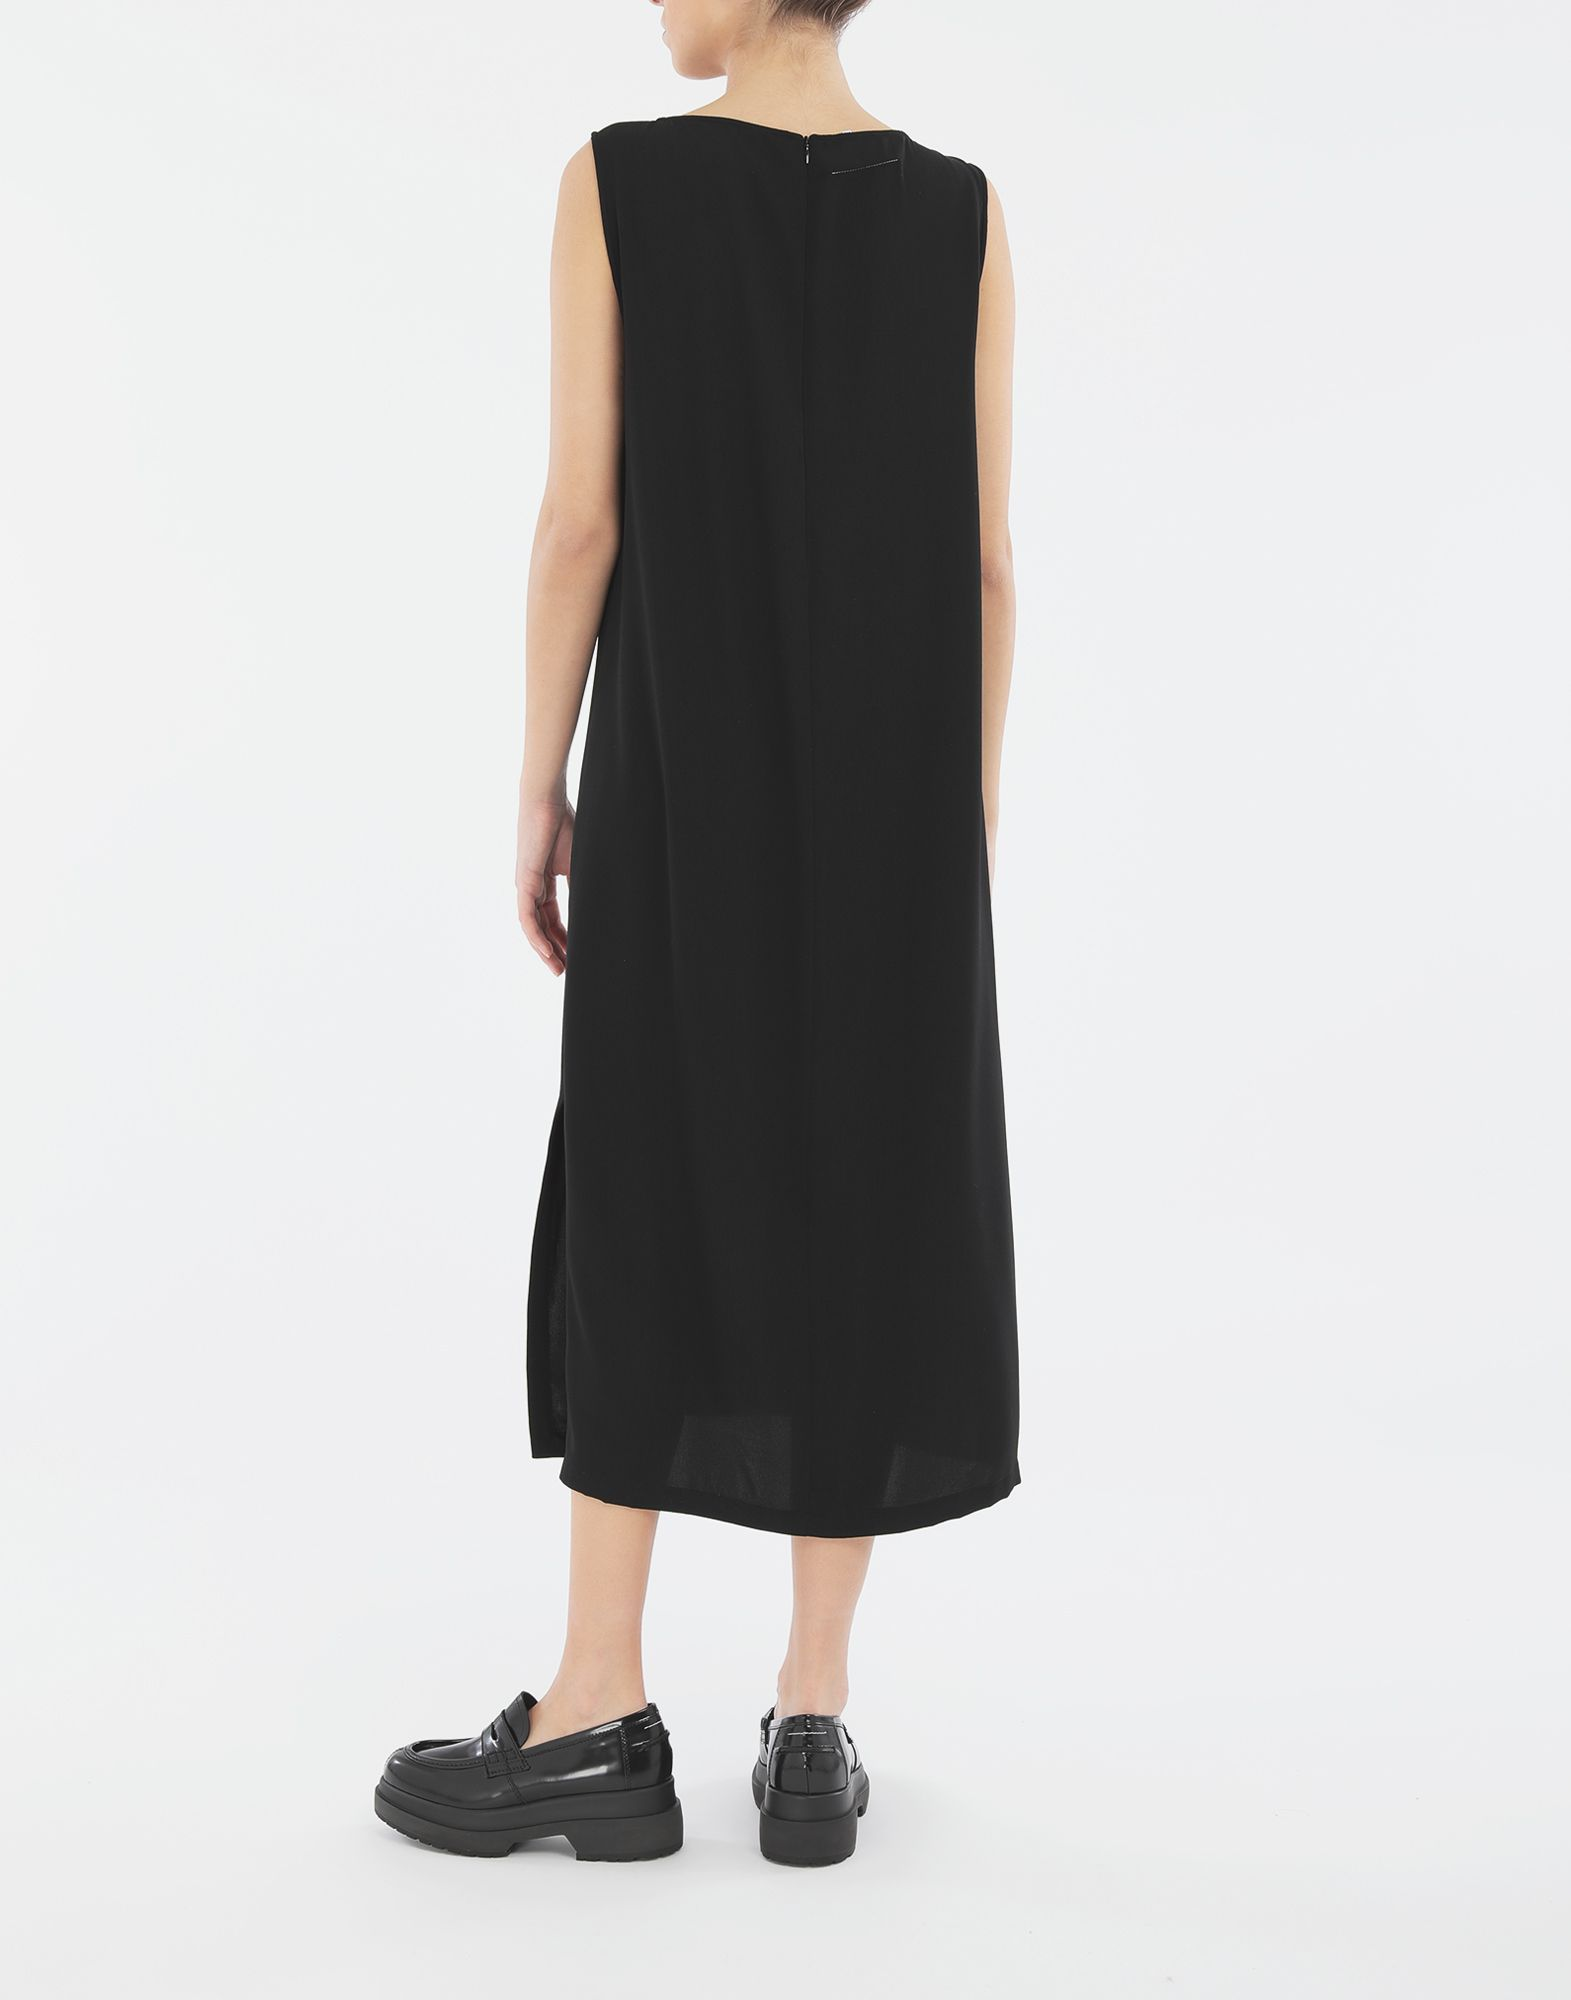 MM6 MAISON MARGIELA Décortiqué zip dress 3/4 length dress Woman e